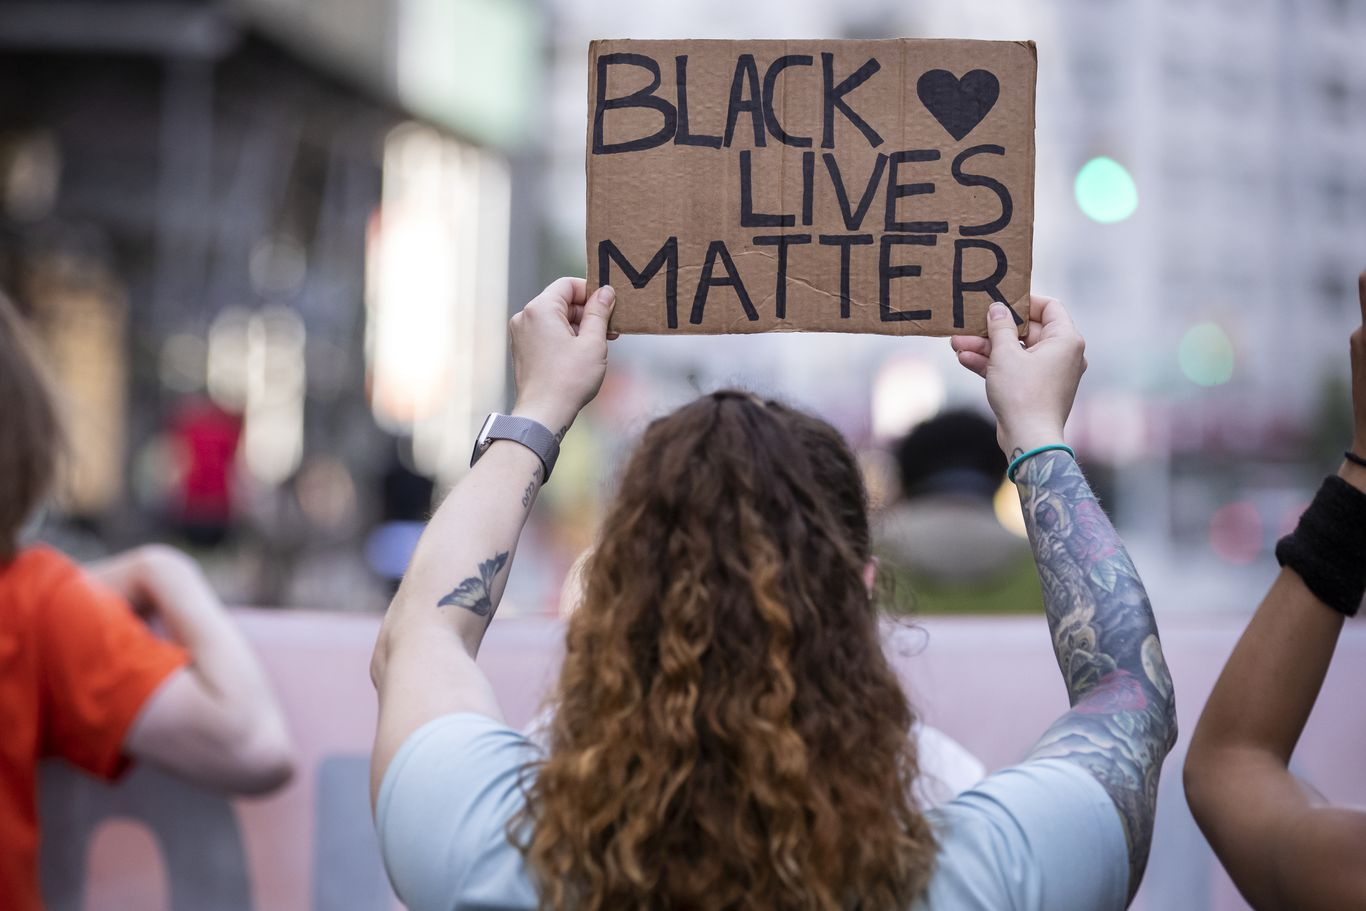 Shooting at Black Lives Matter protest in Austin, Texas thumbnail